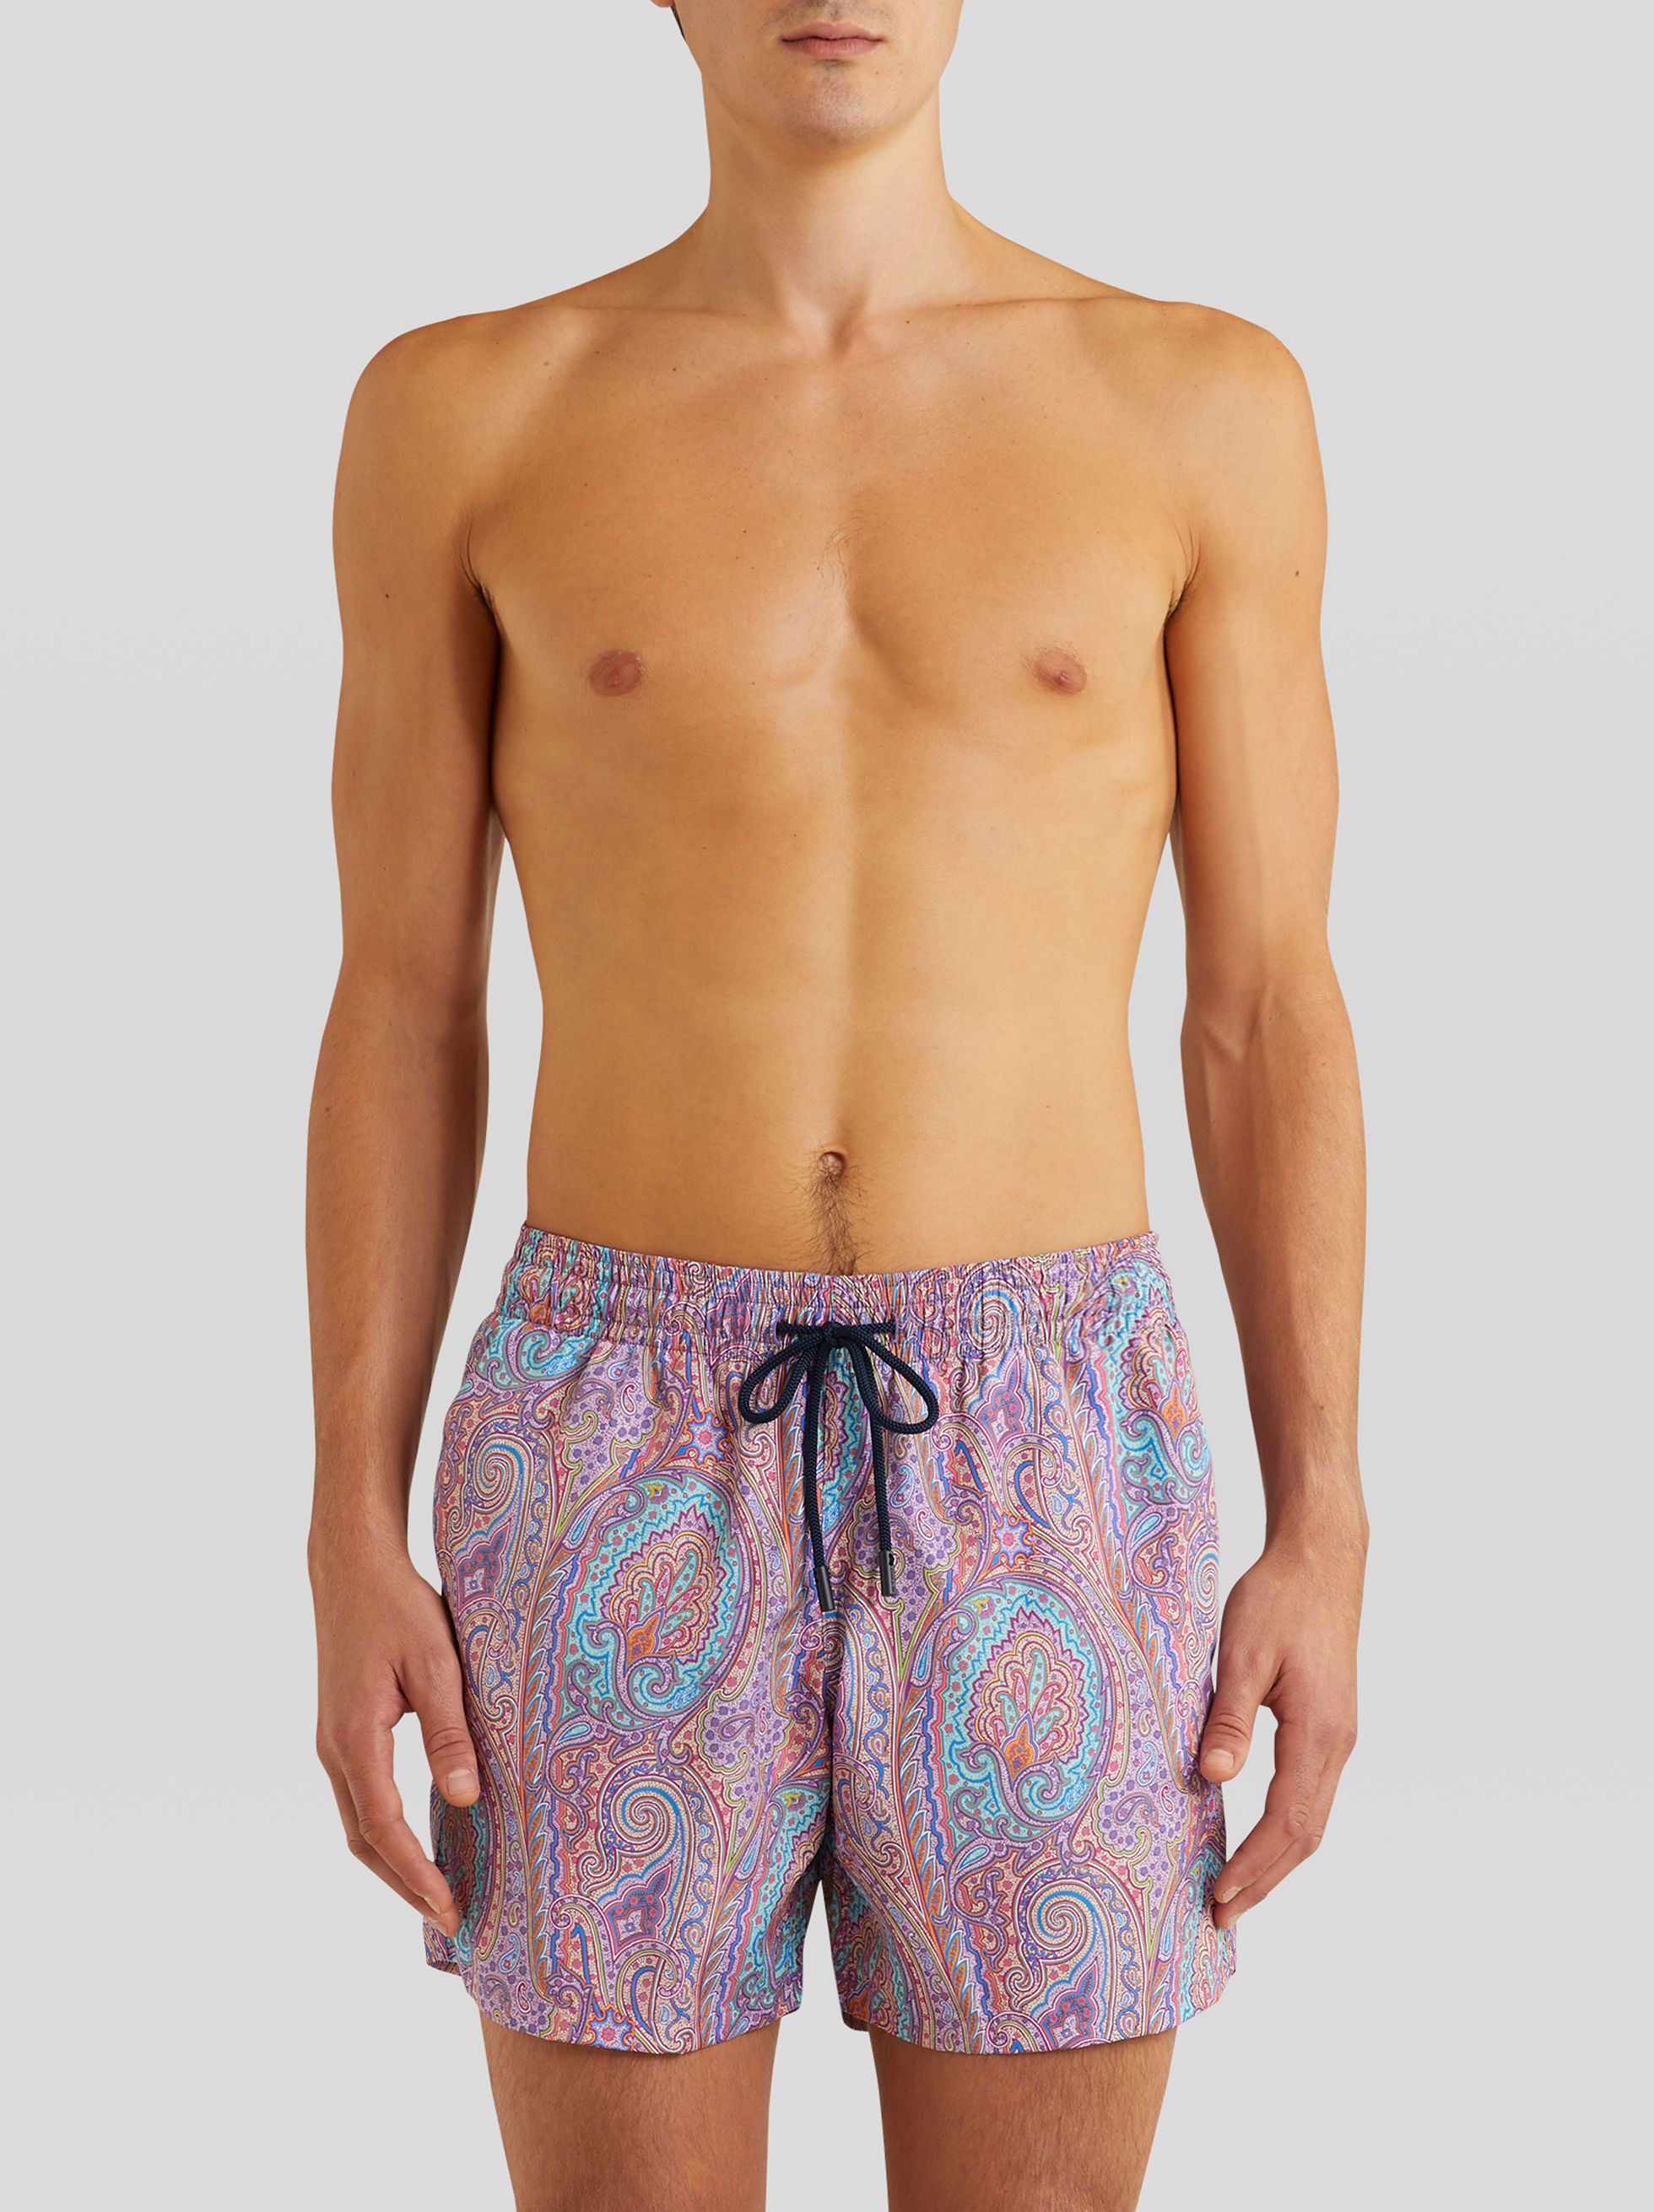 FLORAL PAISLEY PATTERN SWIM SHORTS